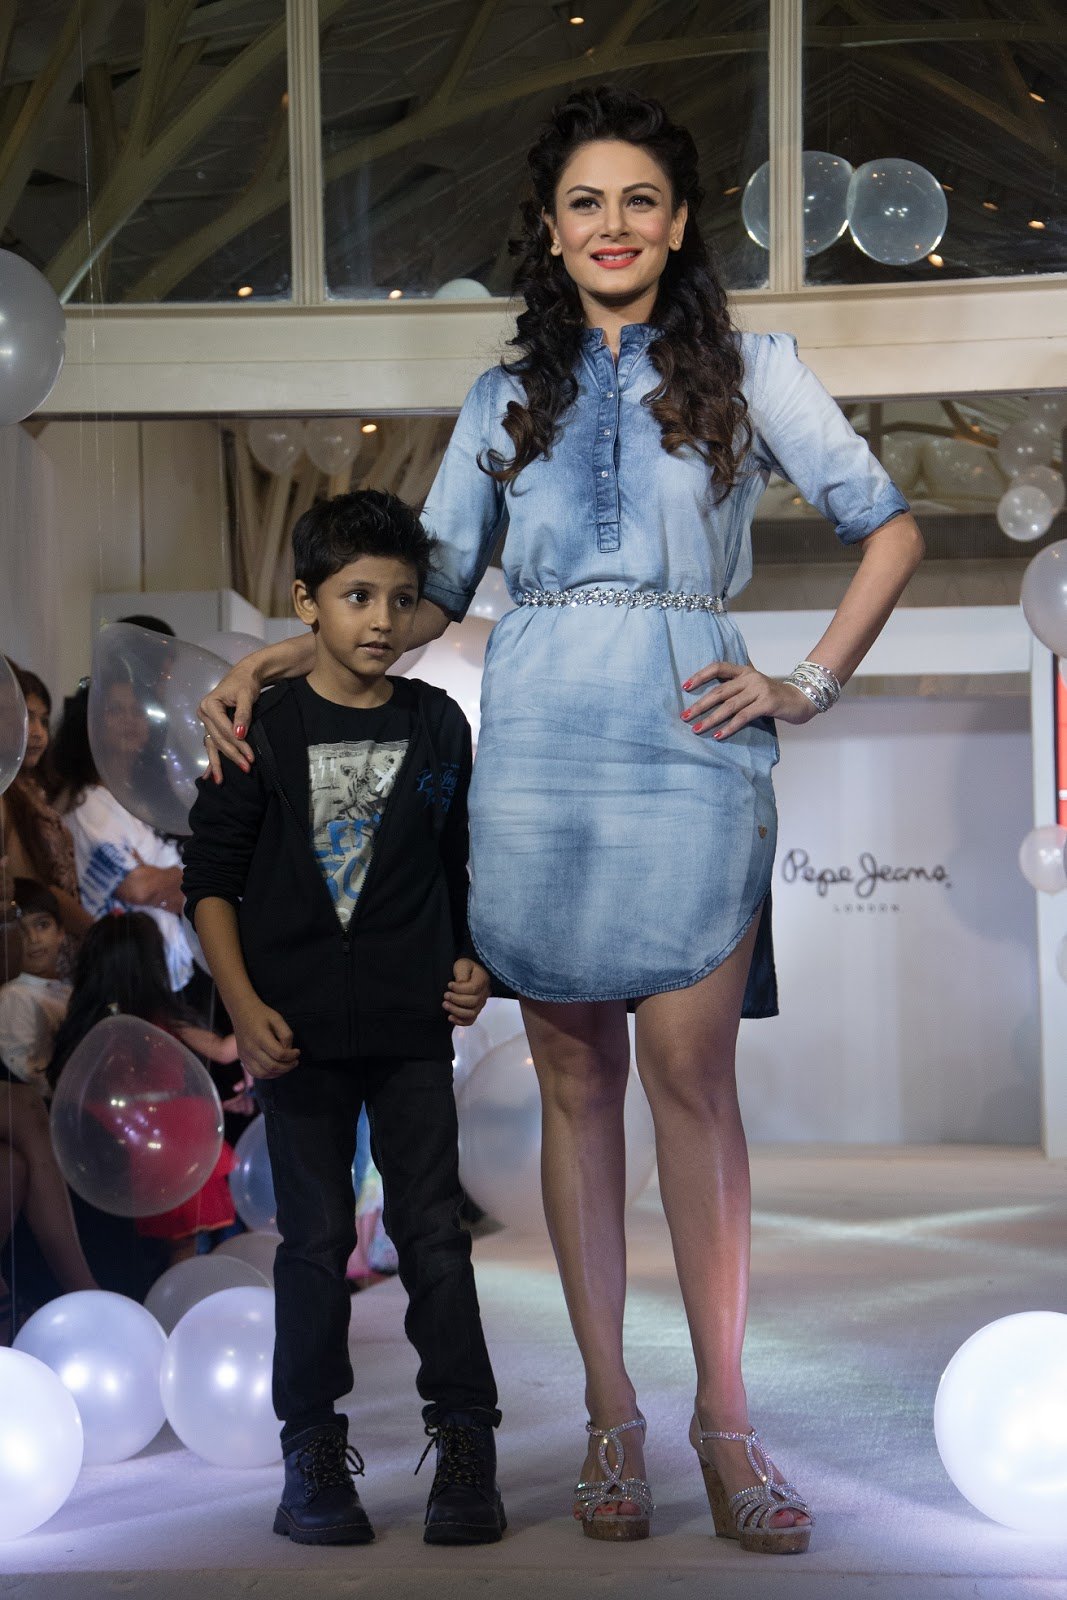 save off 30b5a c5cb9 Pepe Jeans launched its first ever children's wear ...